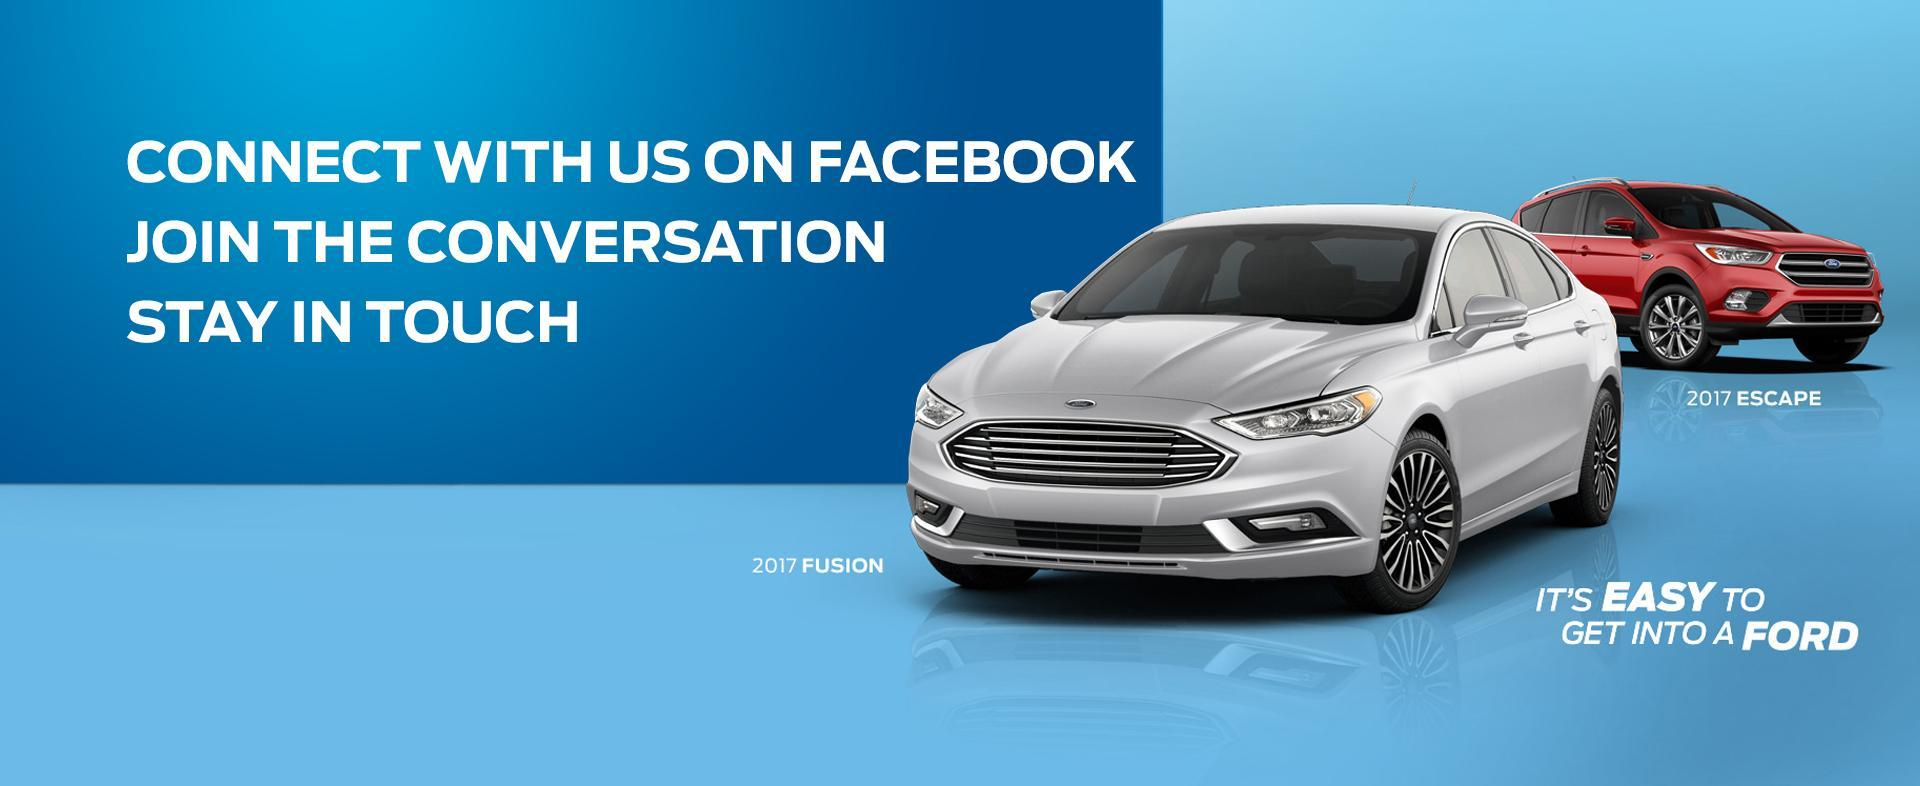 Ford Connect image